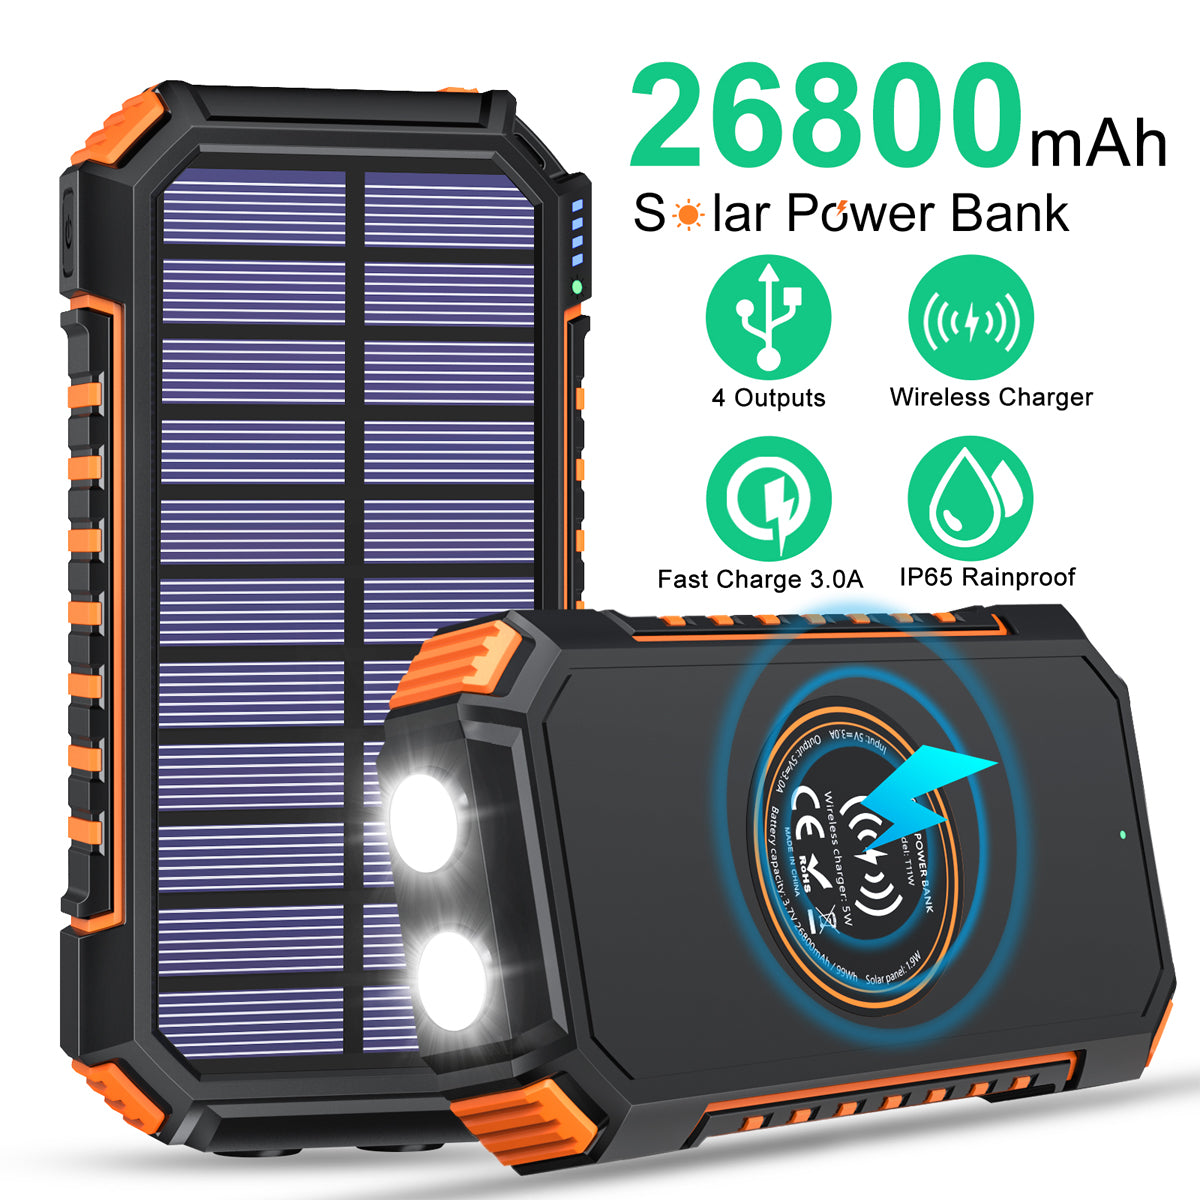 Solar Charger 26800mAh High Capacity, ADDTOP Wireless Portable Charger USB C Power Bank with 4 Outputs, Fast Charging Phone Charger for iPhone Samsung iPad and Outdoor Waterproof Camping/Hiking